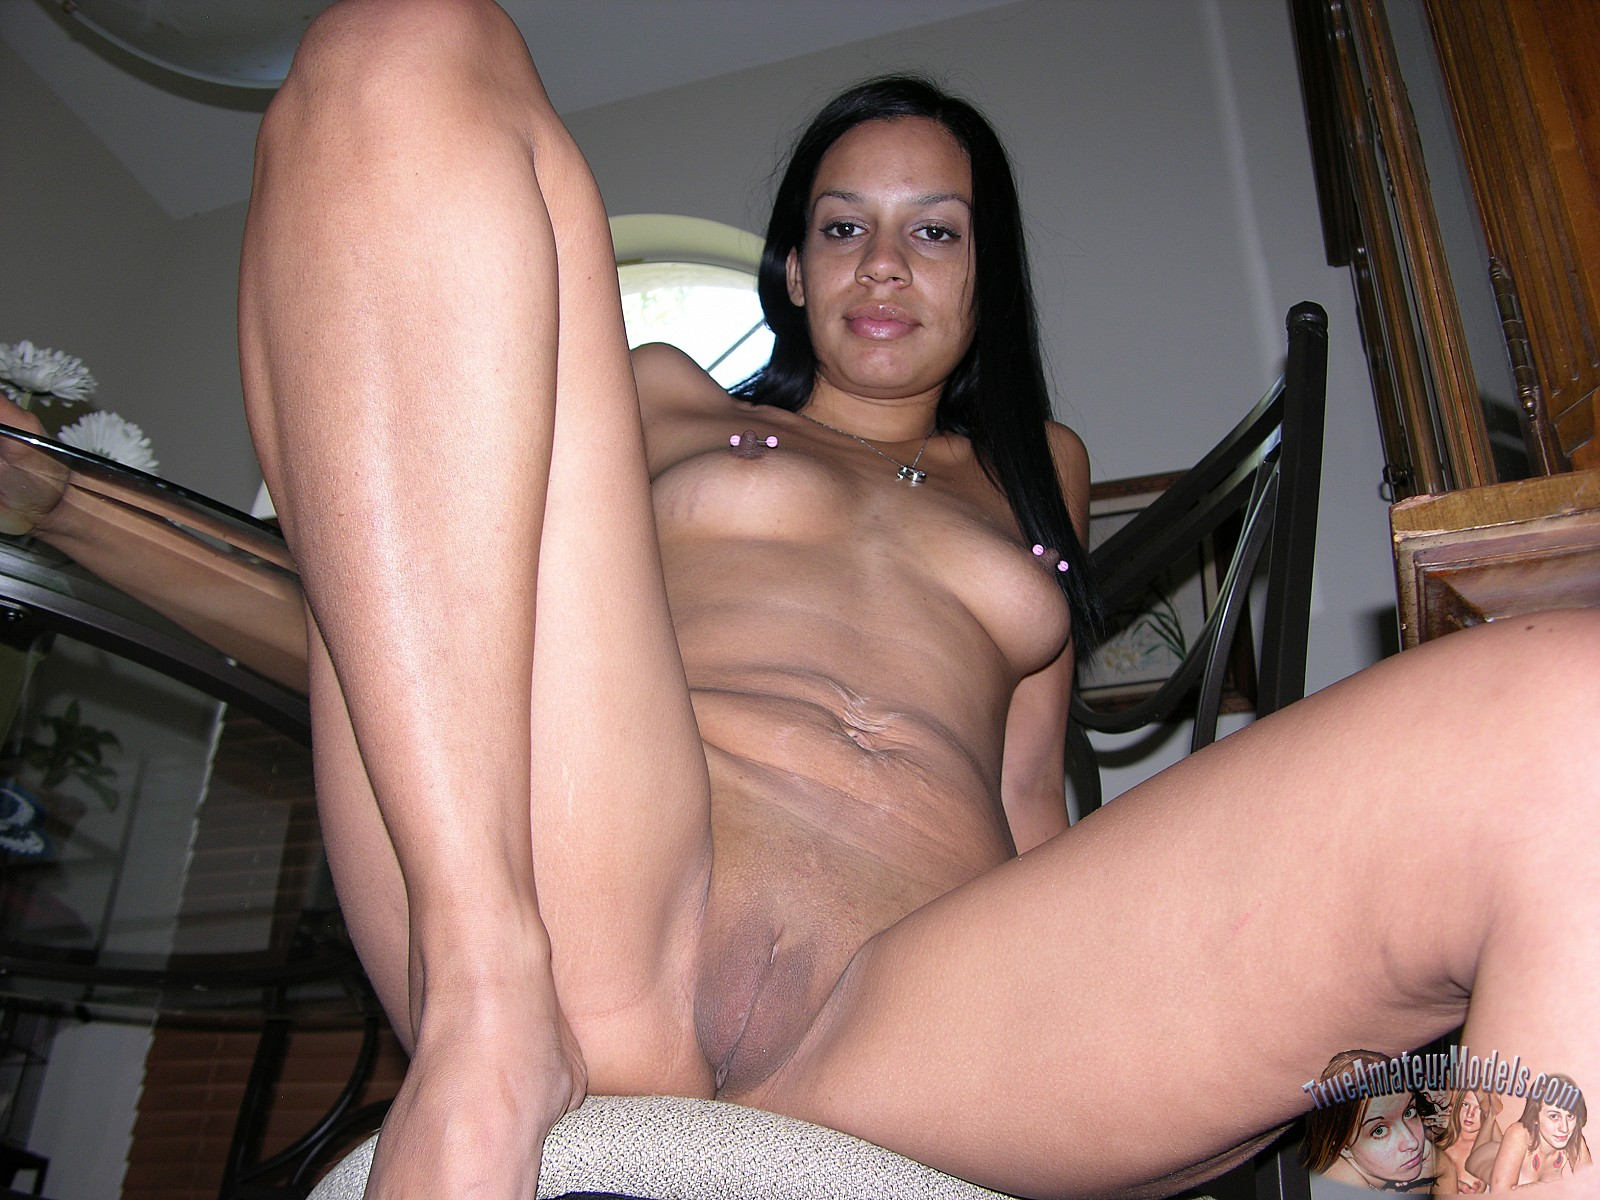 Naked ametuer pics 13